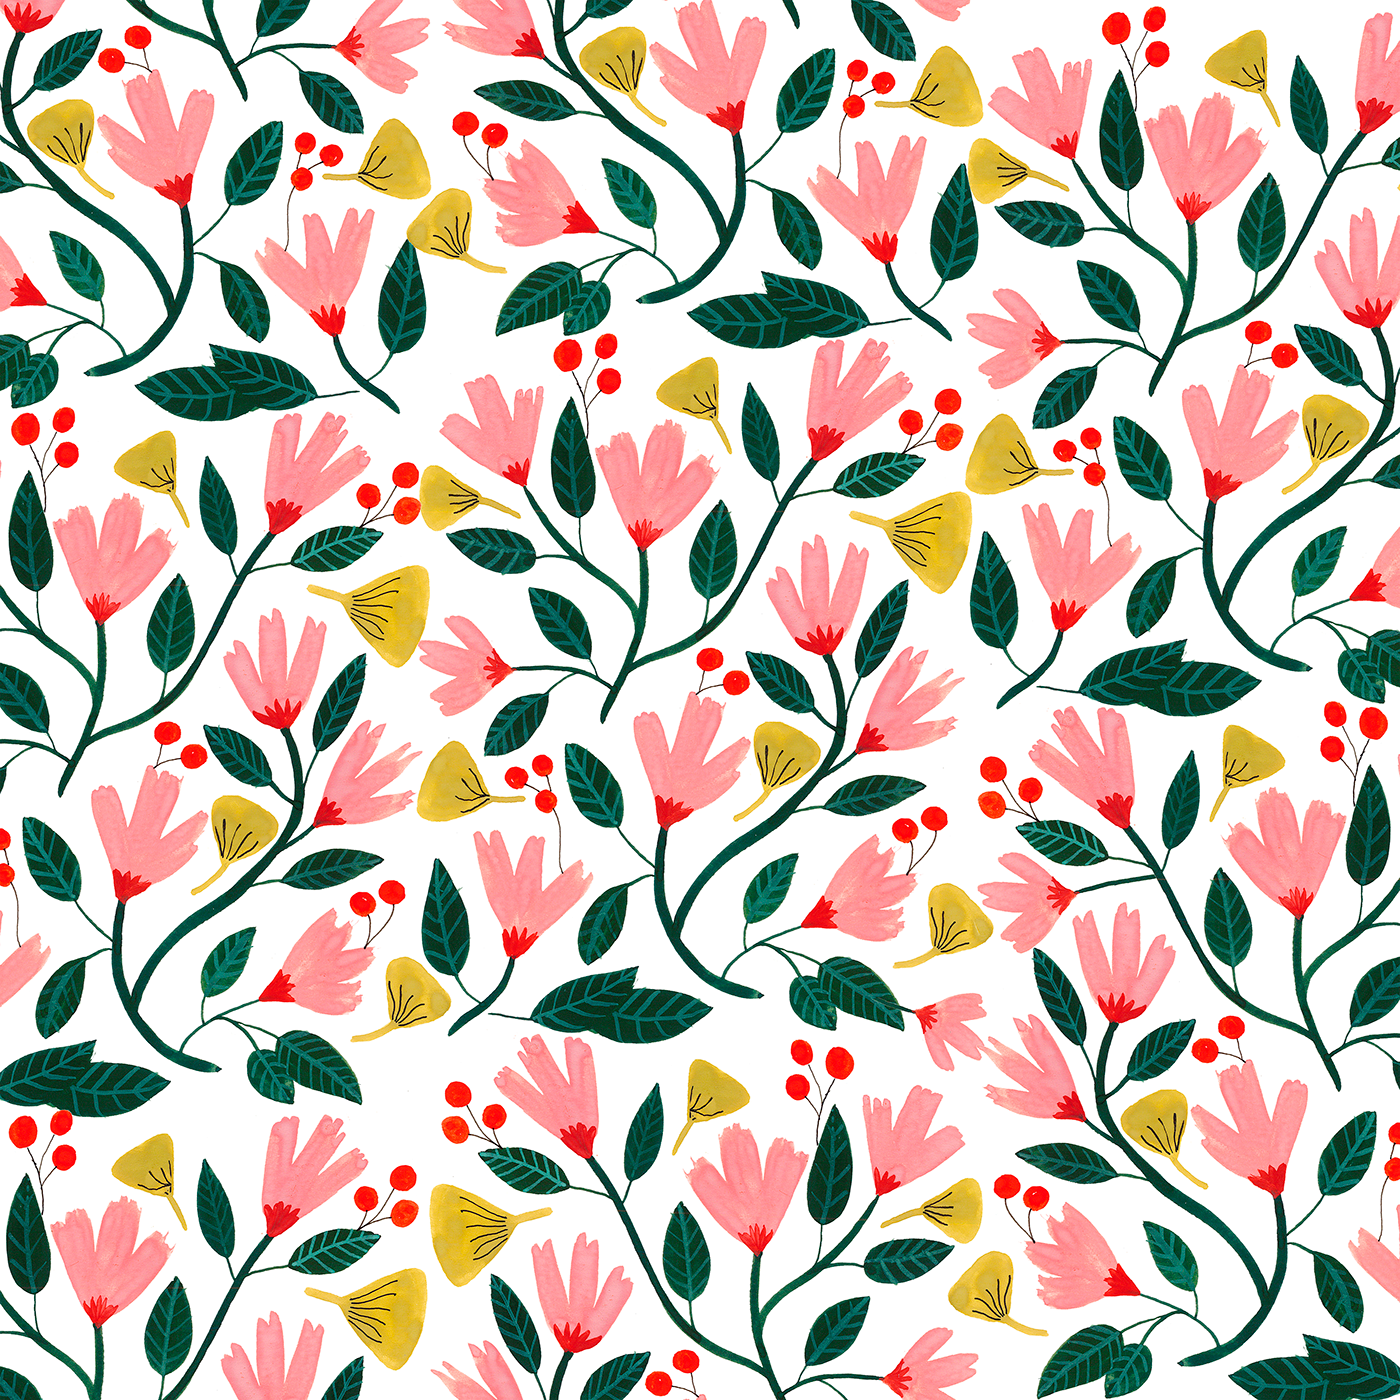 Floral on behance thank. Flower pattern png